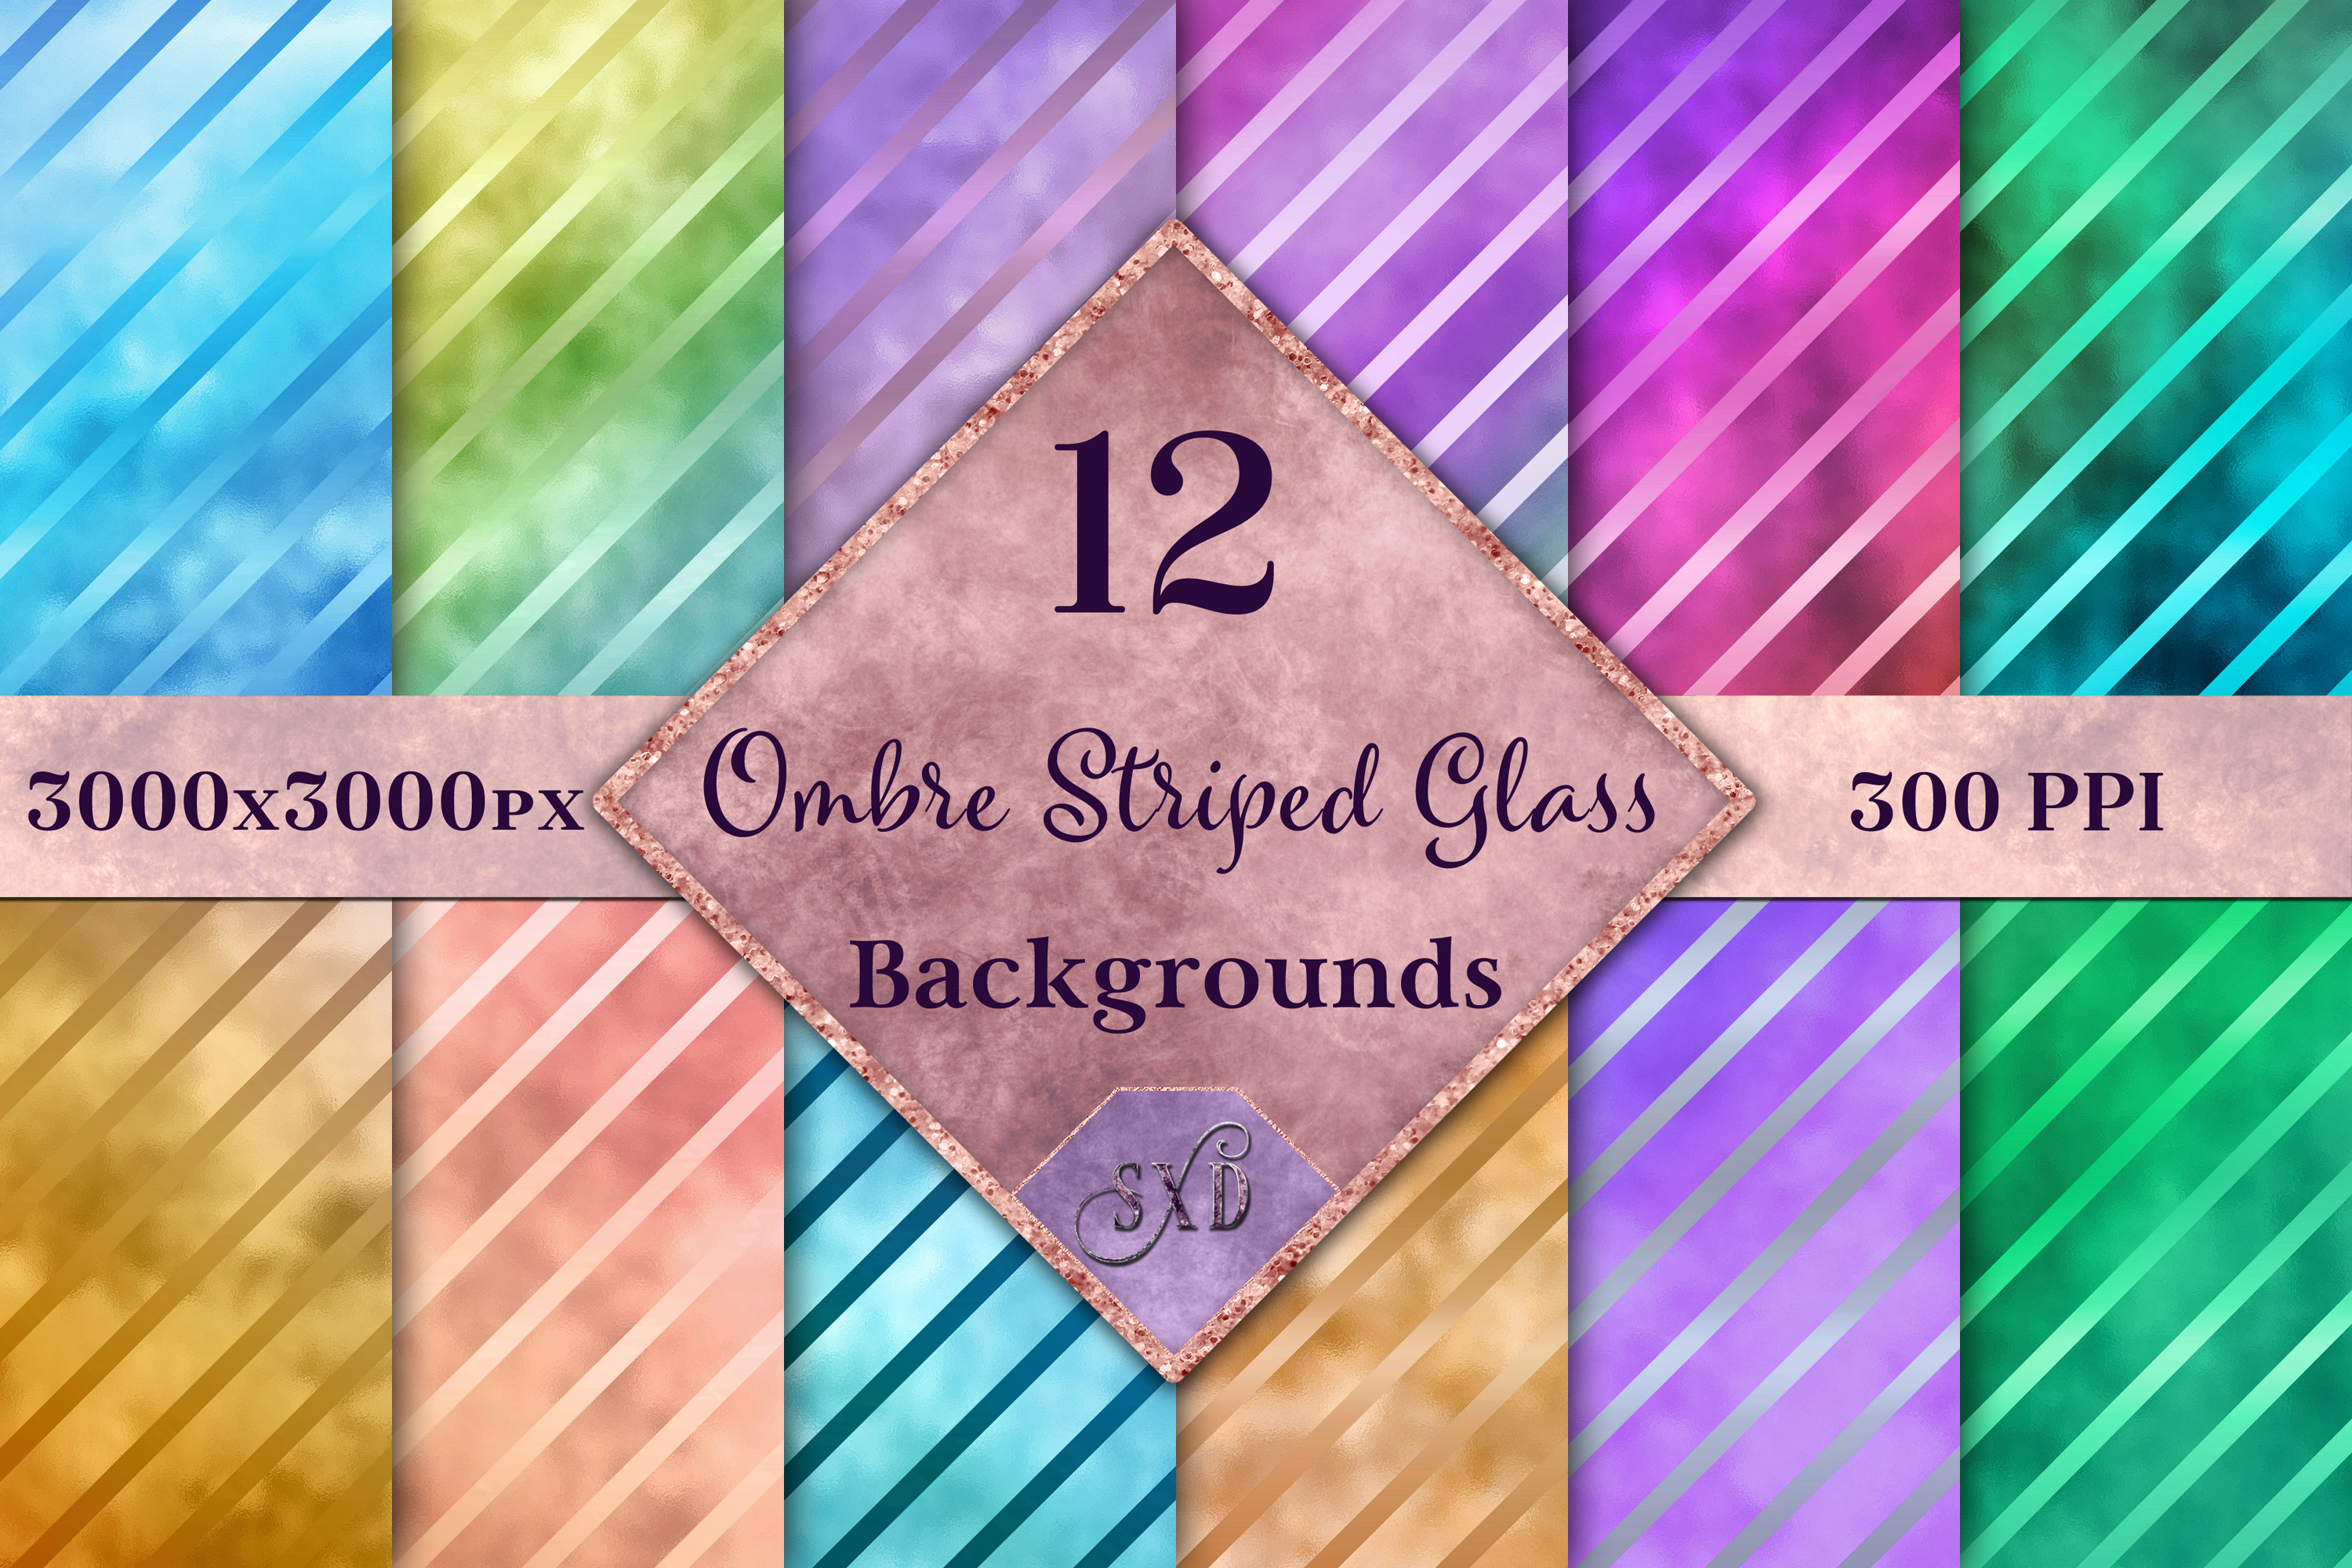 Ombre Striped Glass Backgrounds - 12 Image Textures Set example image 1